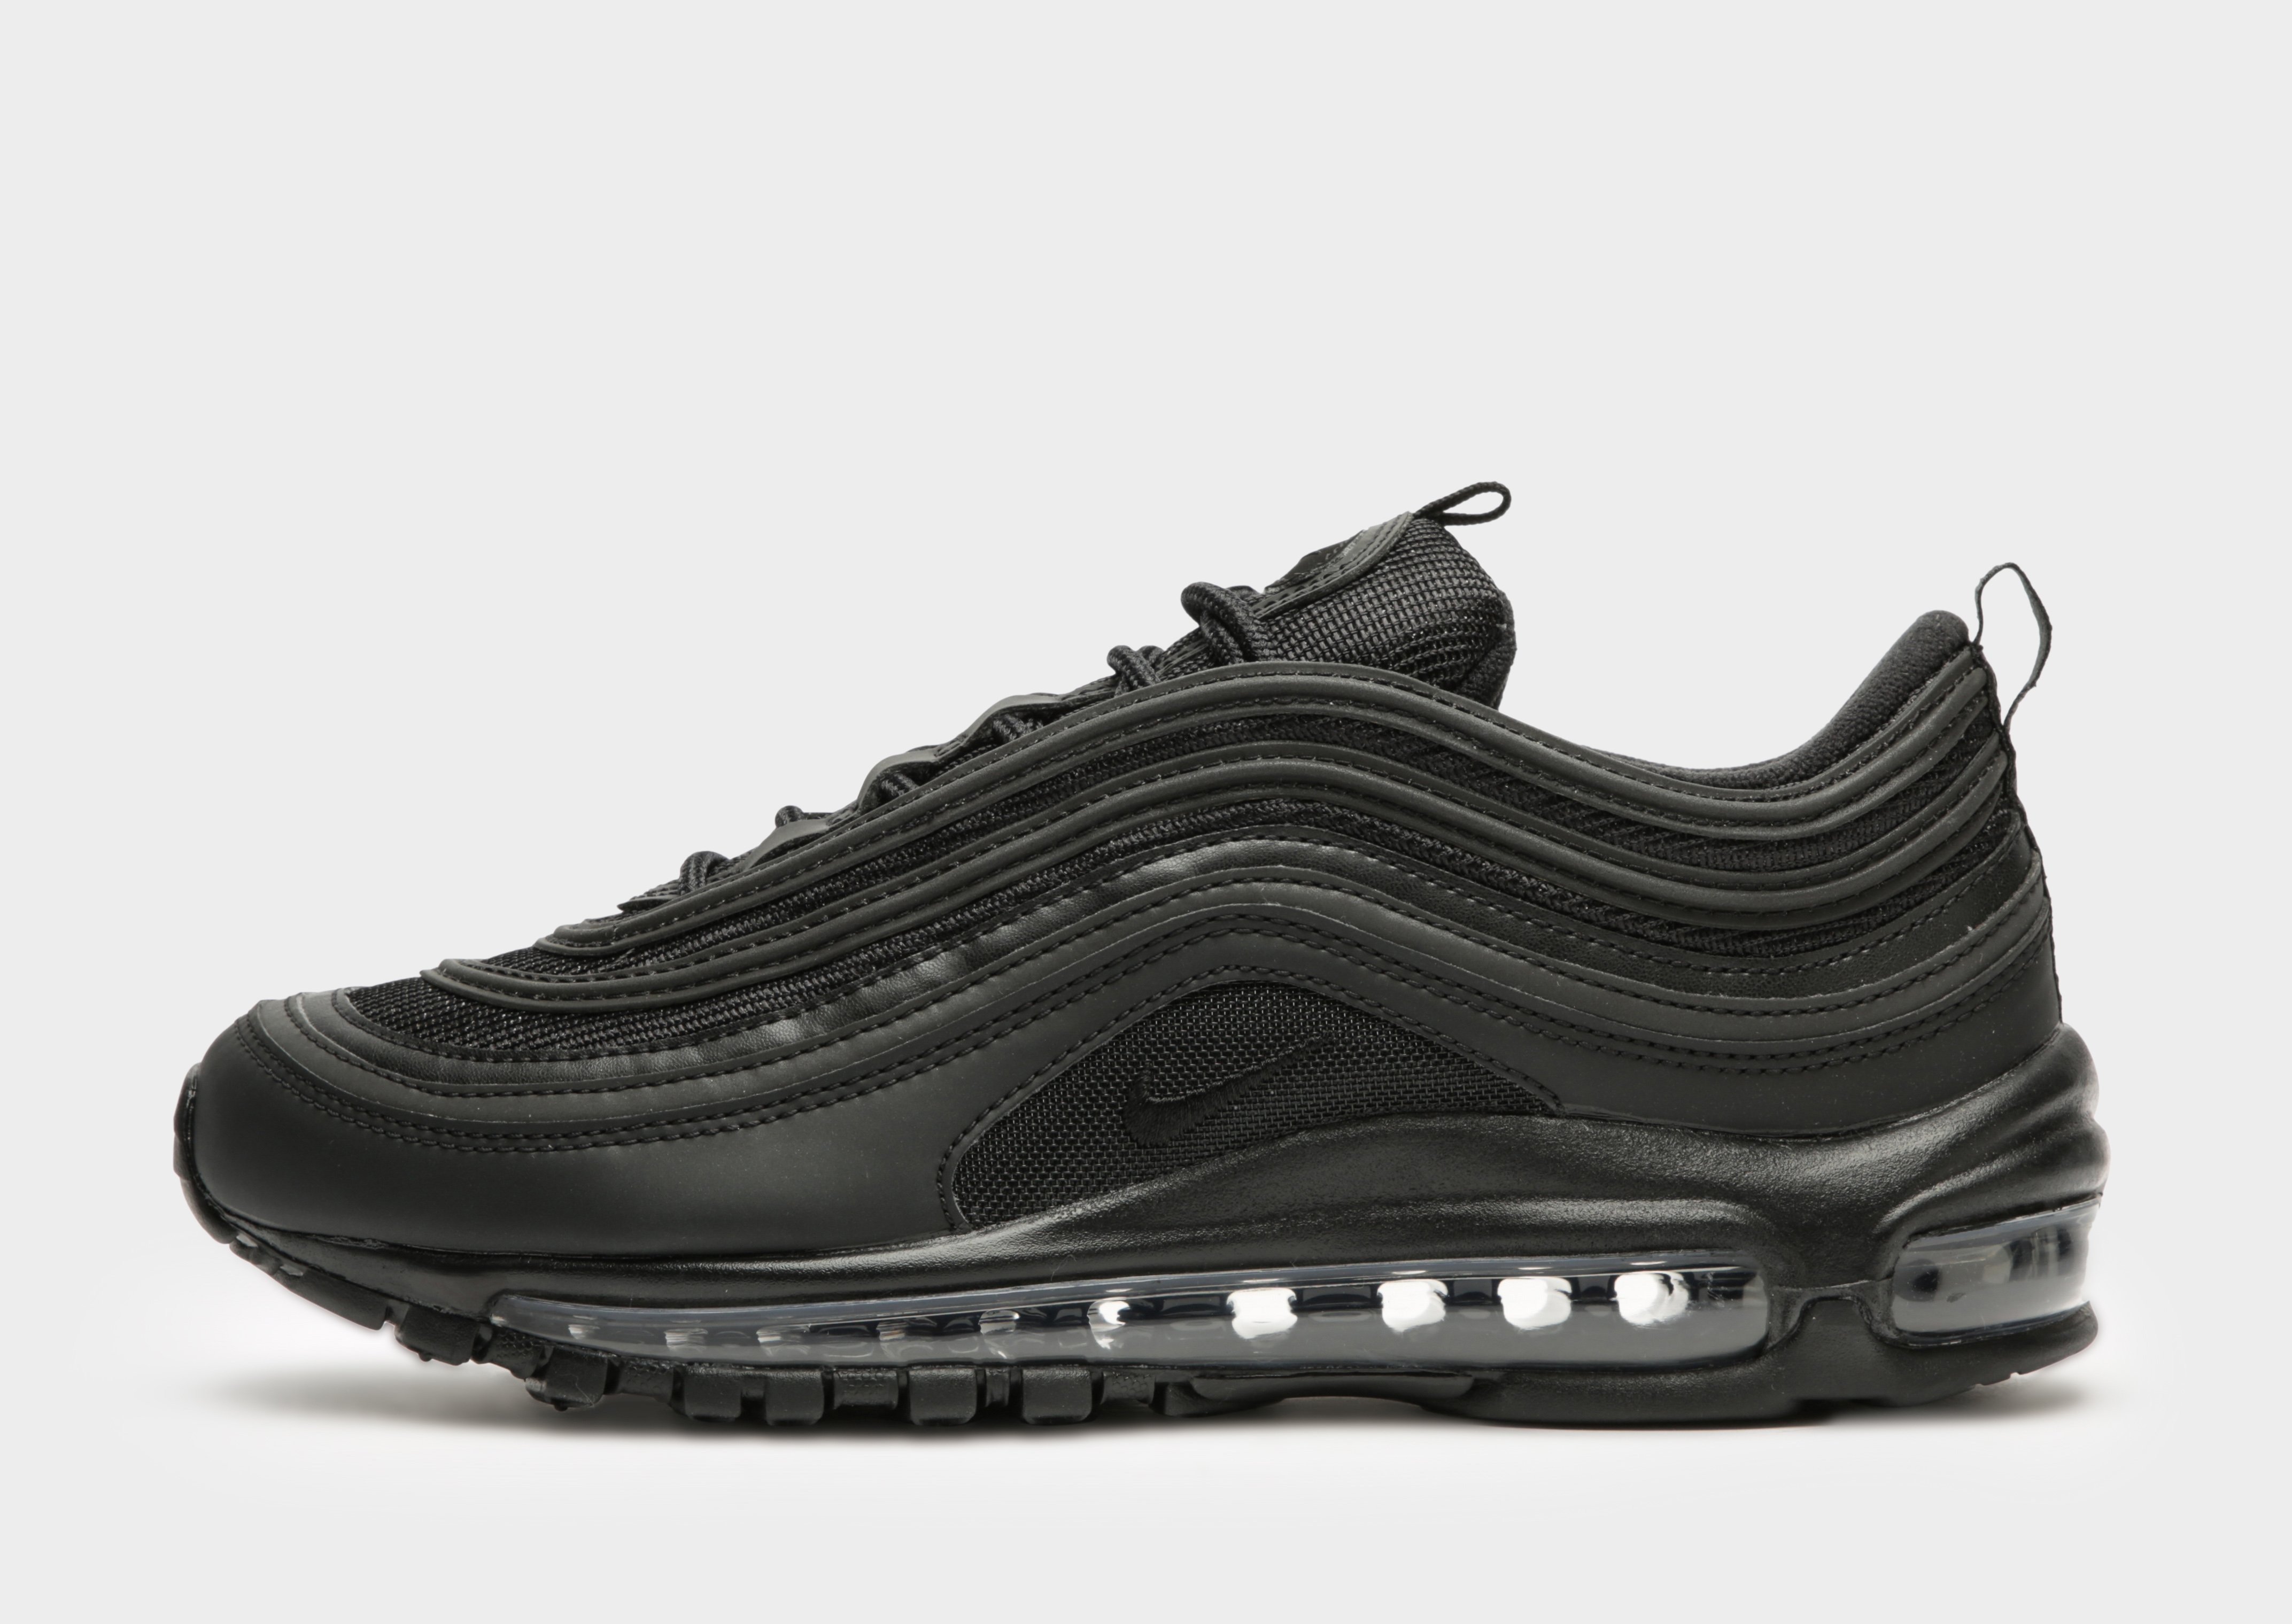 AIR MAX 97 MSCHF X INRI JESUS SHOES DEADSTOCK